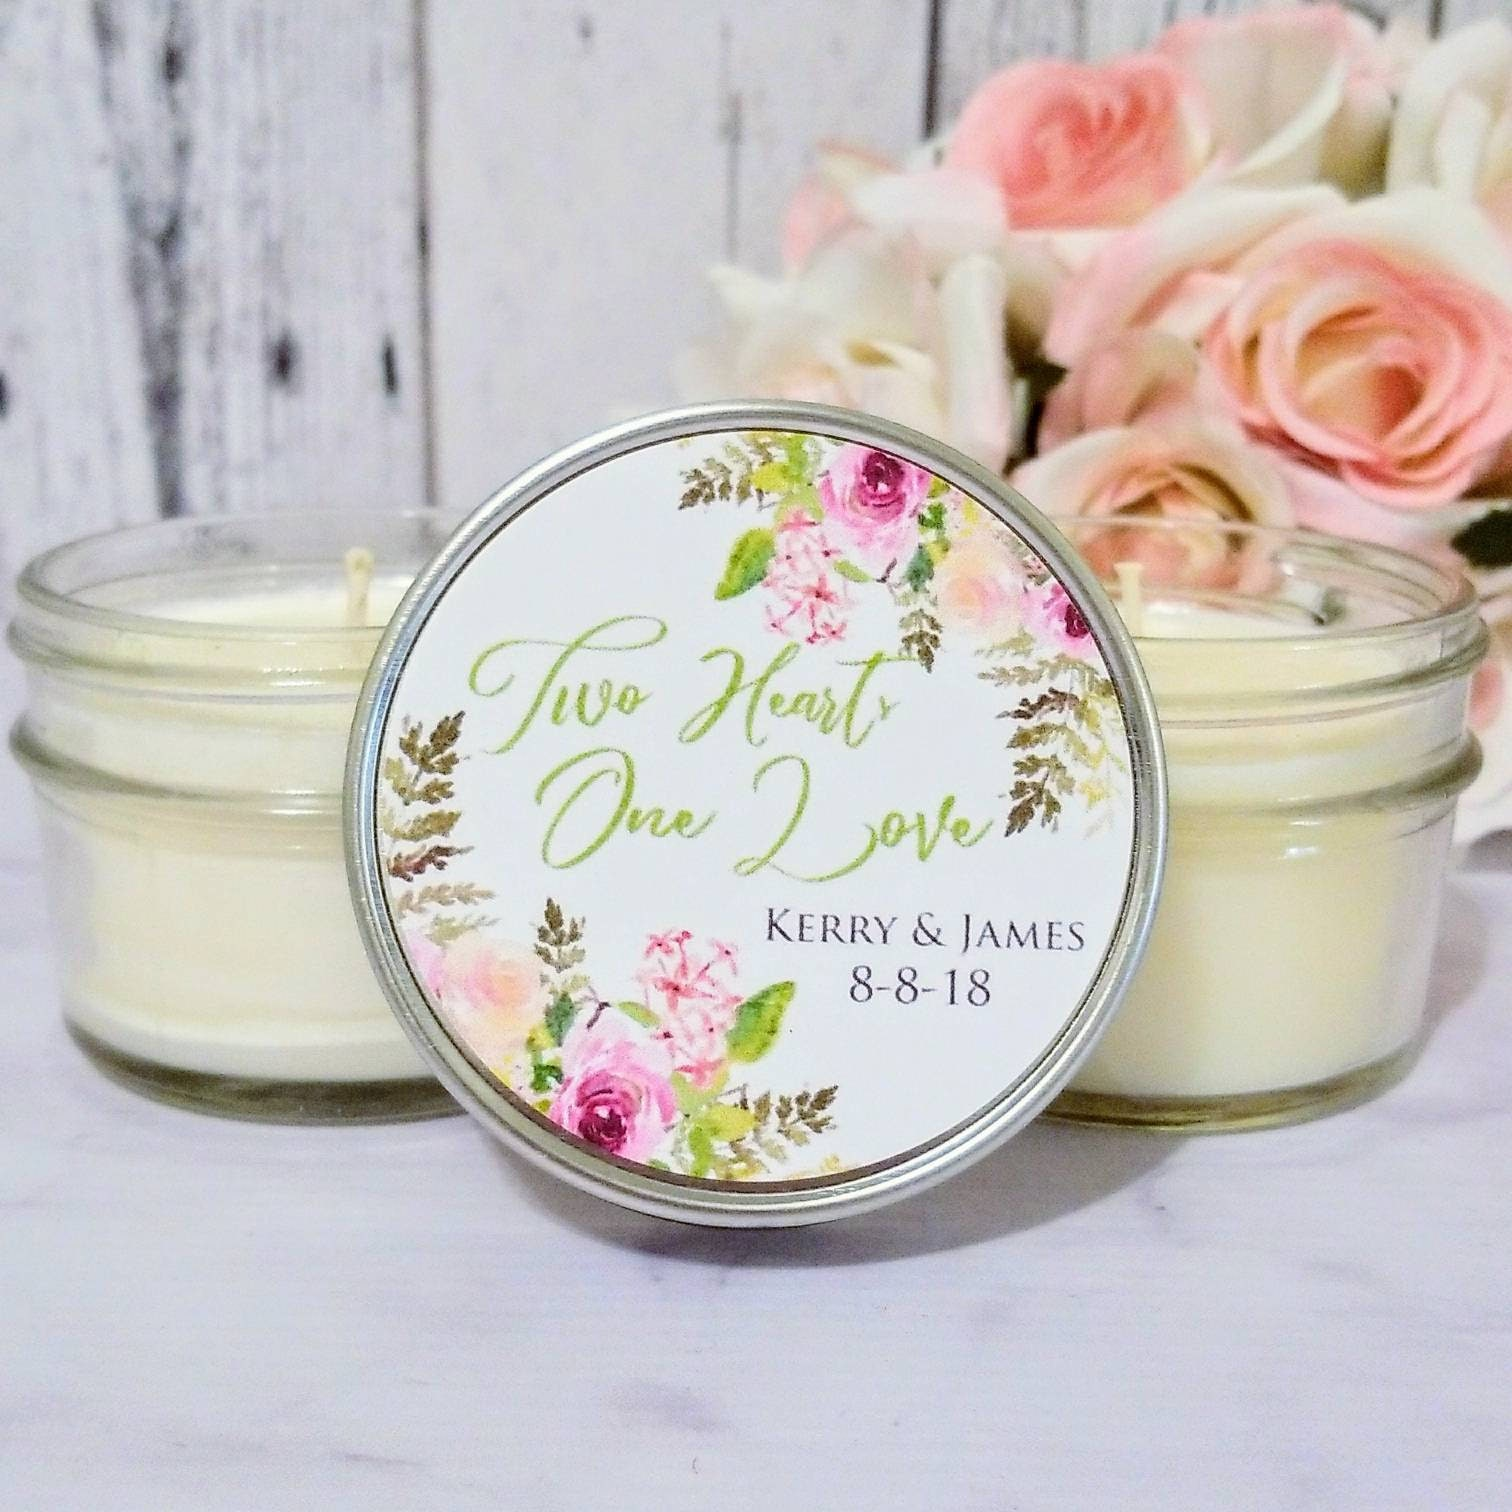 Floral Wedding Favors Wedding Favors Candles Floral Favors